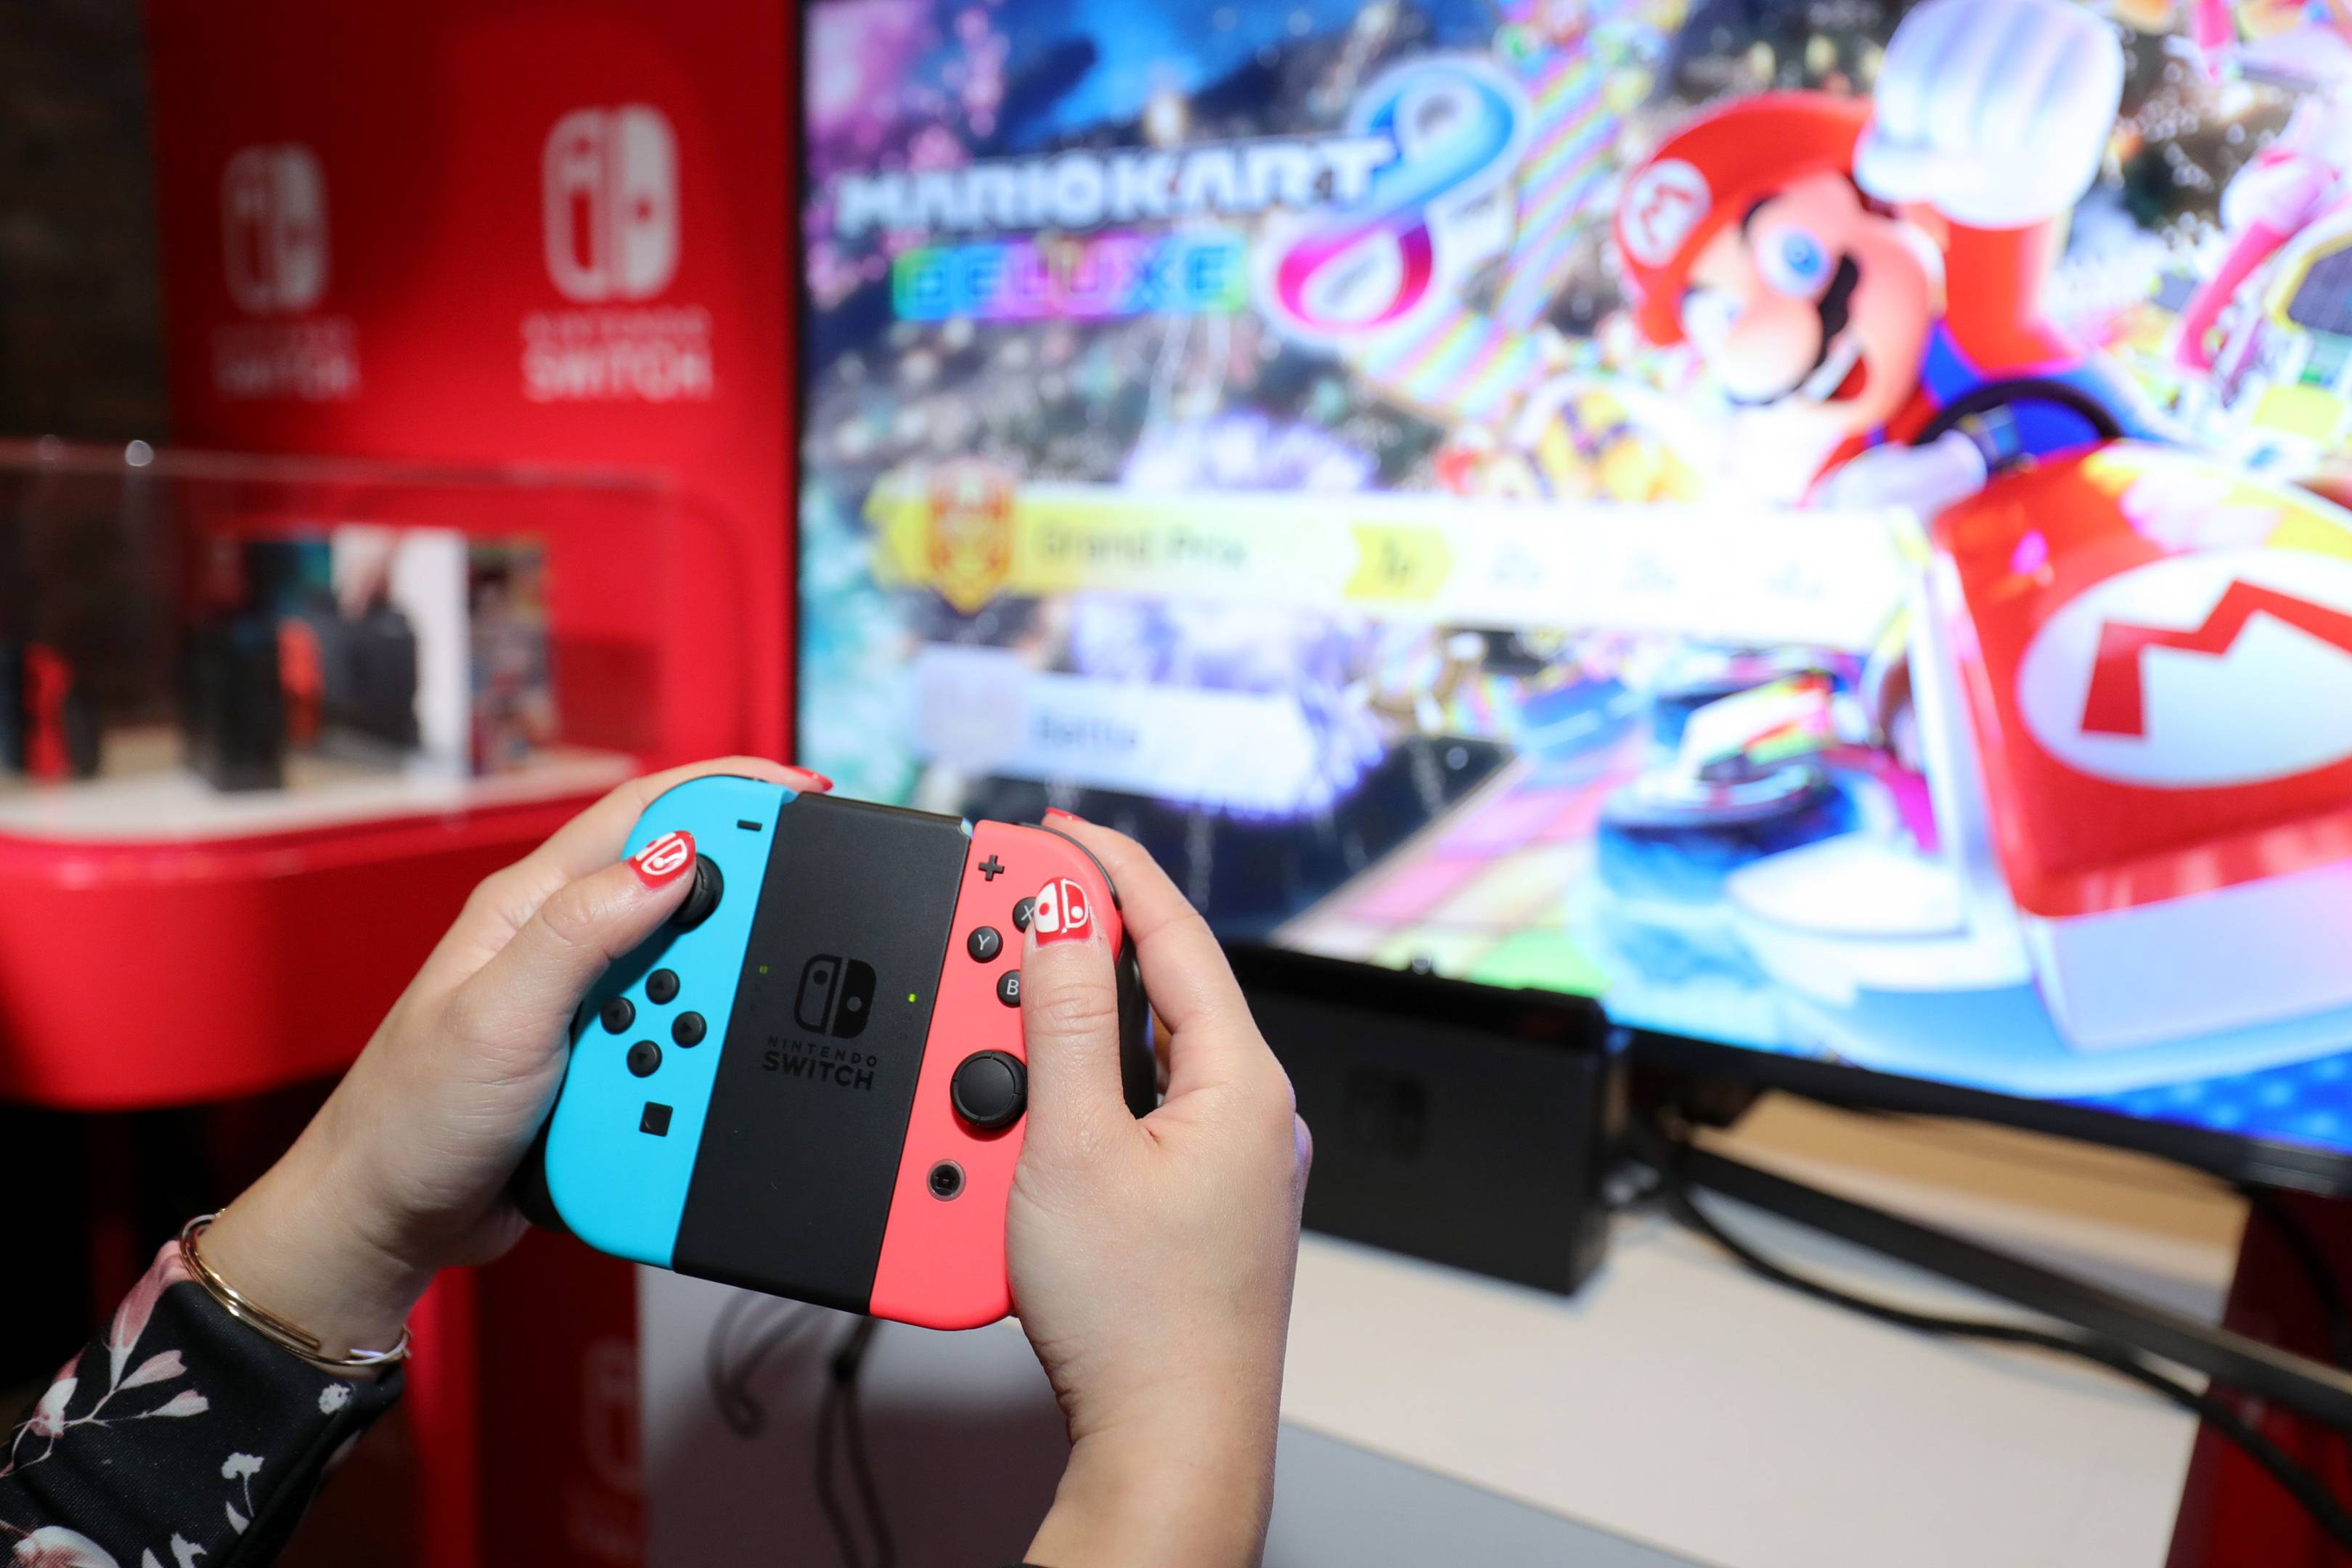 Nintendo Switch Hands On Ingenious But Flawed Wired Uk 8 Way Joystick